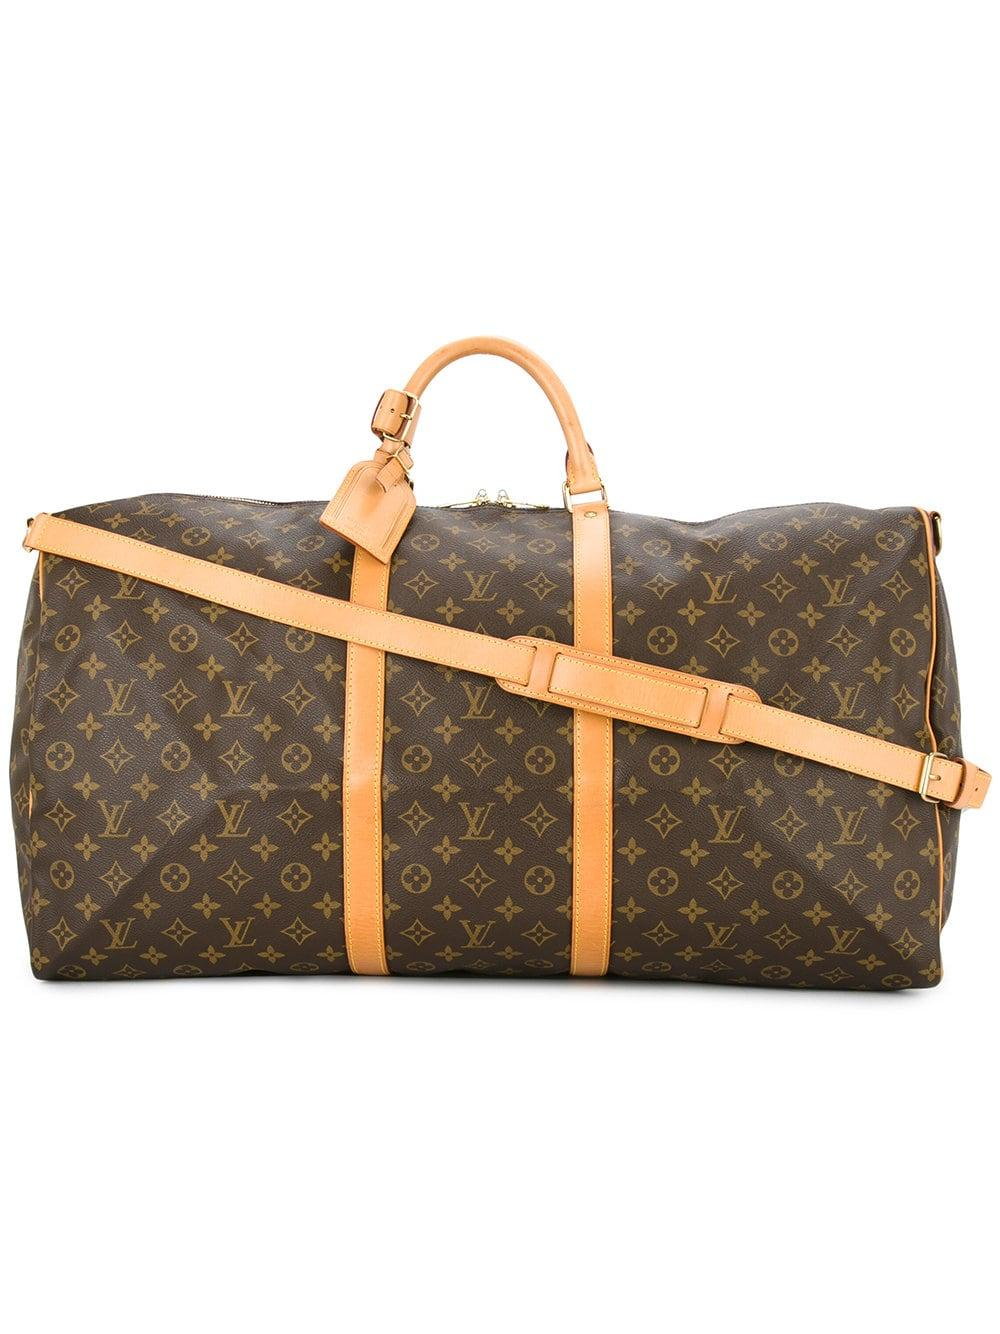 d5022df7 Louis Vuitton Pre-Owned Keepall Bandouliere 60 Bag - Brown